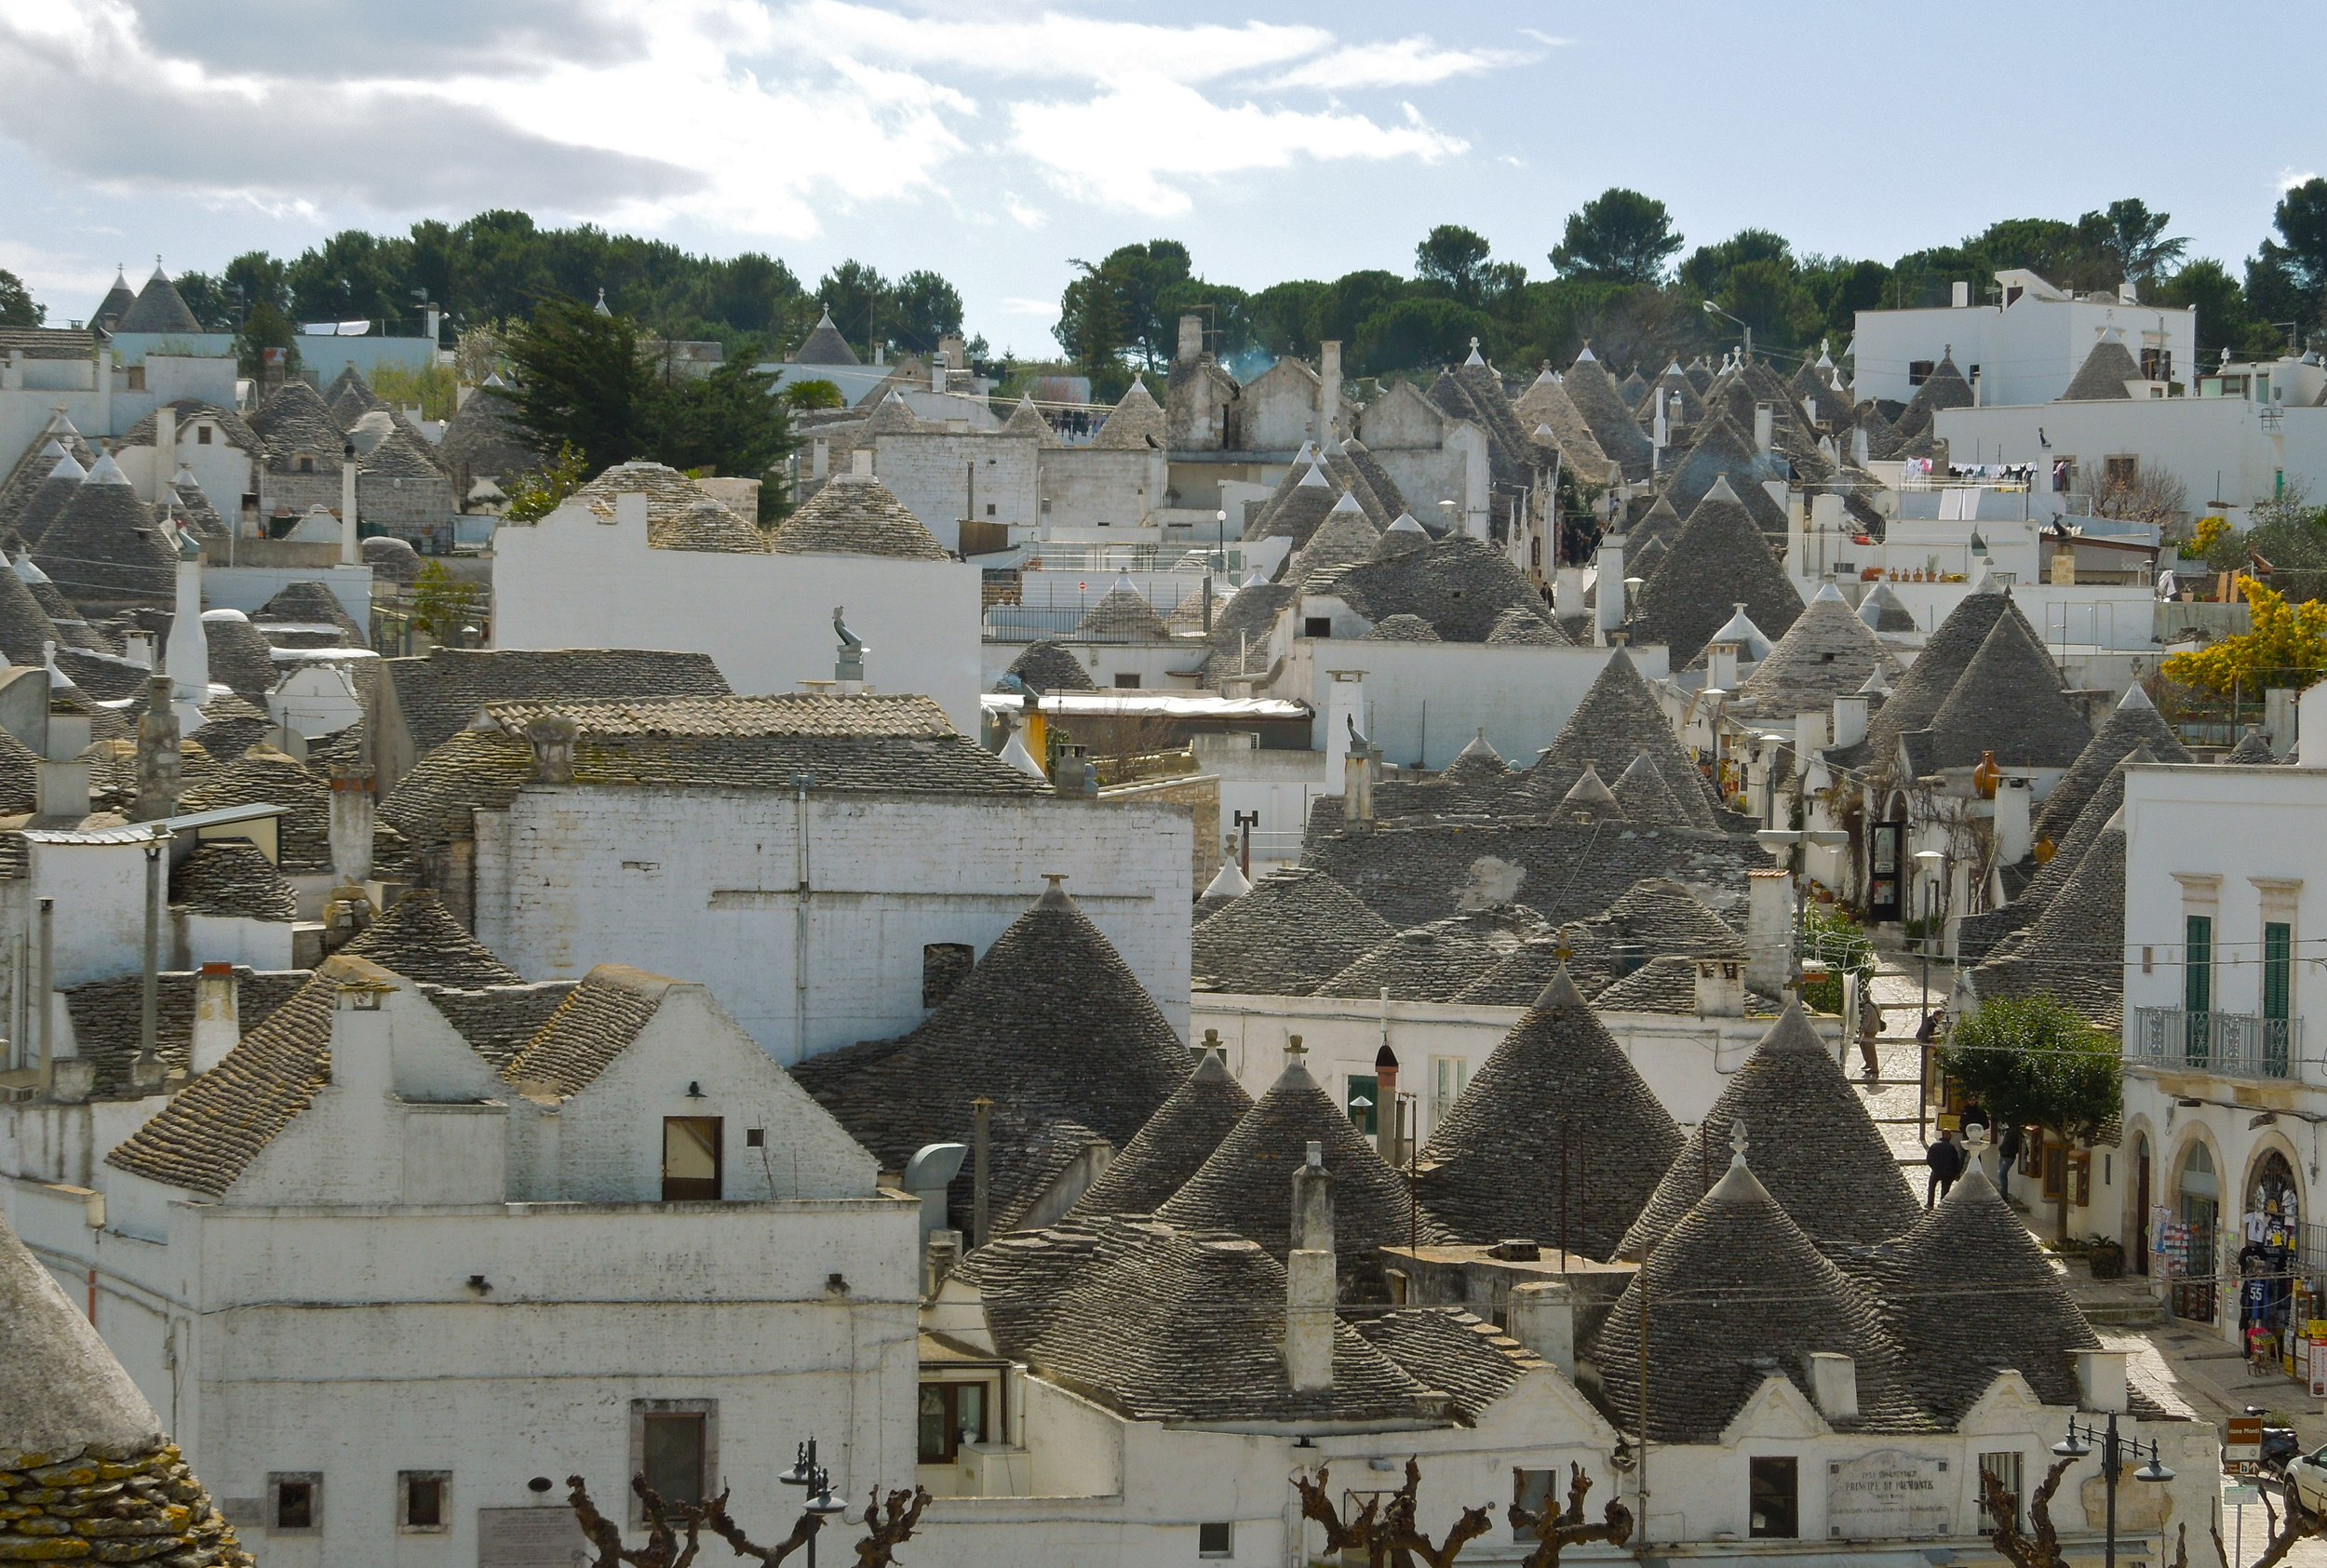 Alberobello, Image thanks to Amanda Roelle